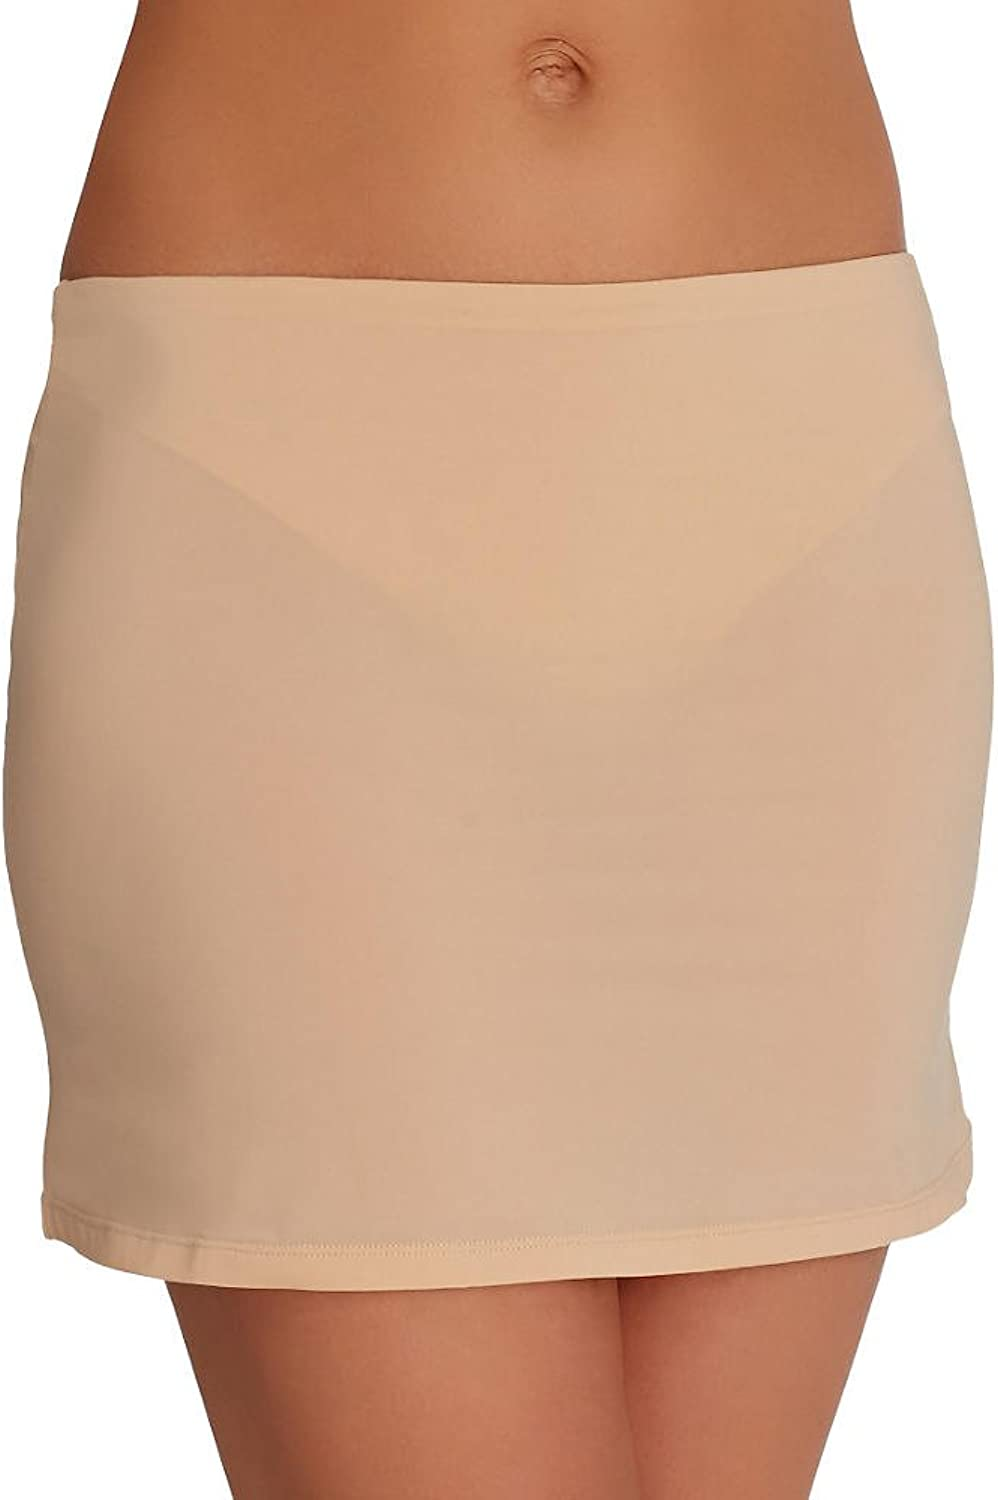 Bumbrella by Cici Soleil Womens 2in1 No Squeeze Pantyslip XS nude